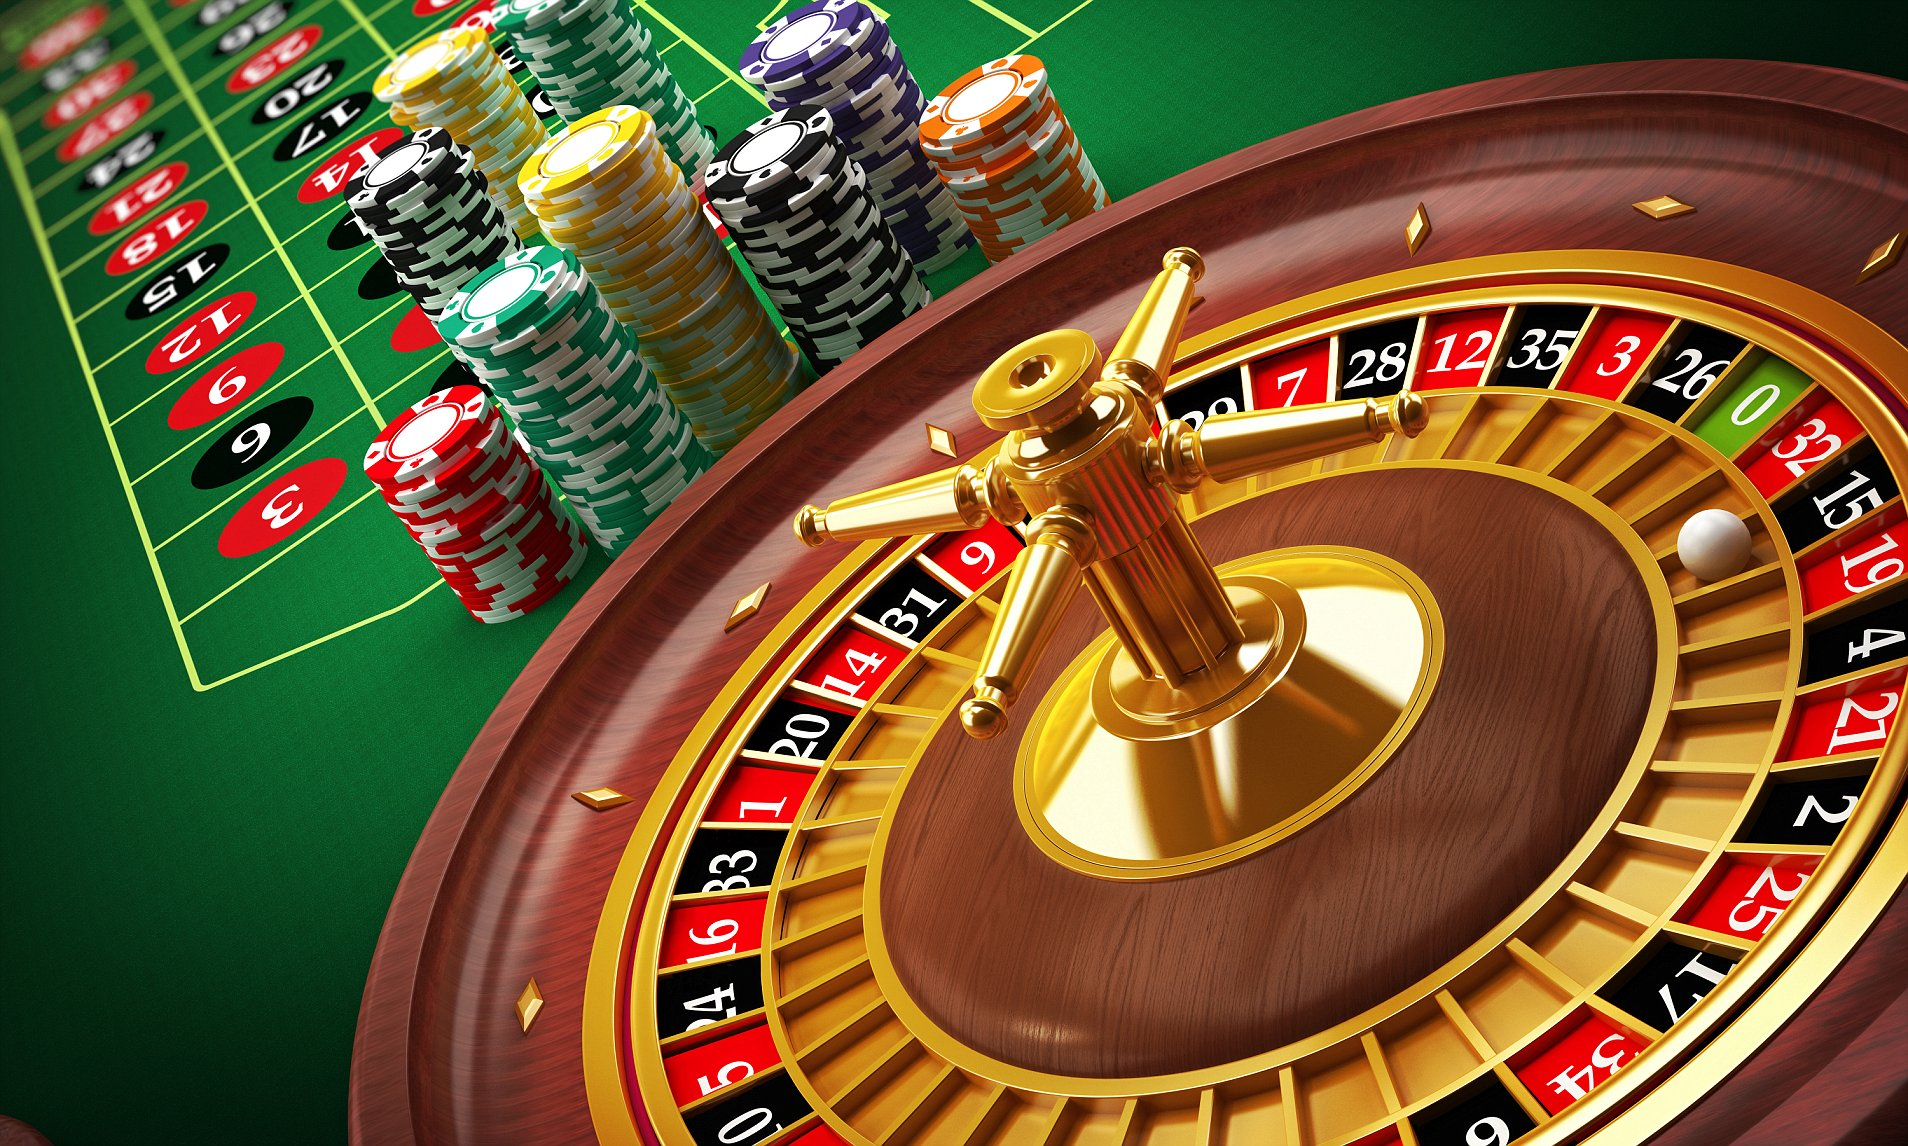 Is Roulette Simulation a Good Way to Learn?